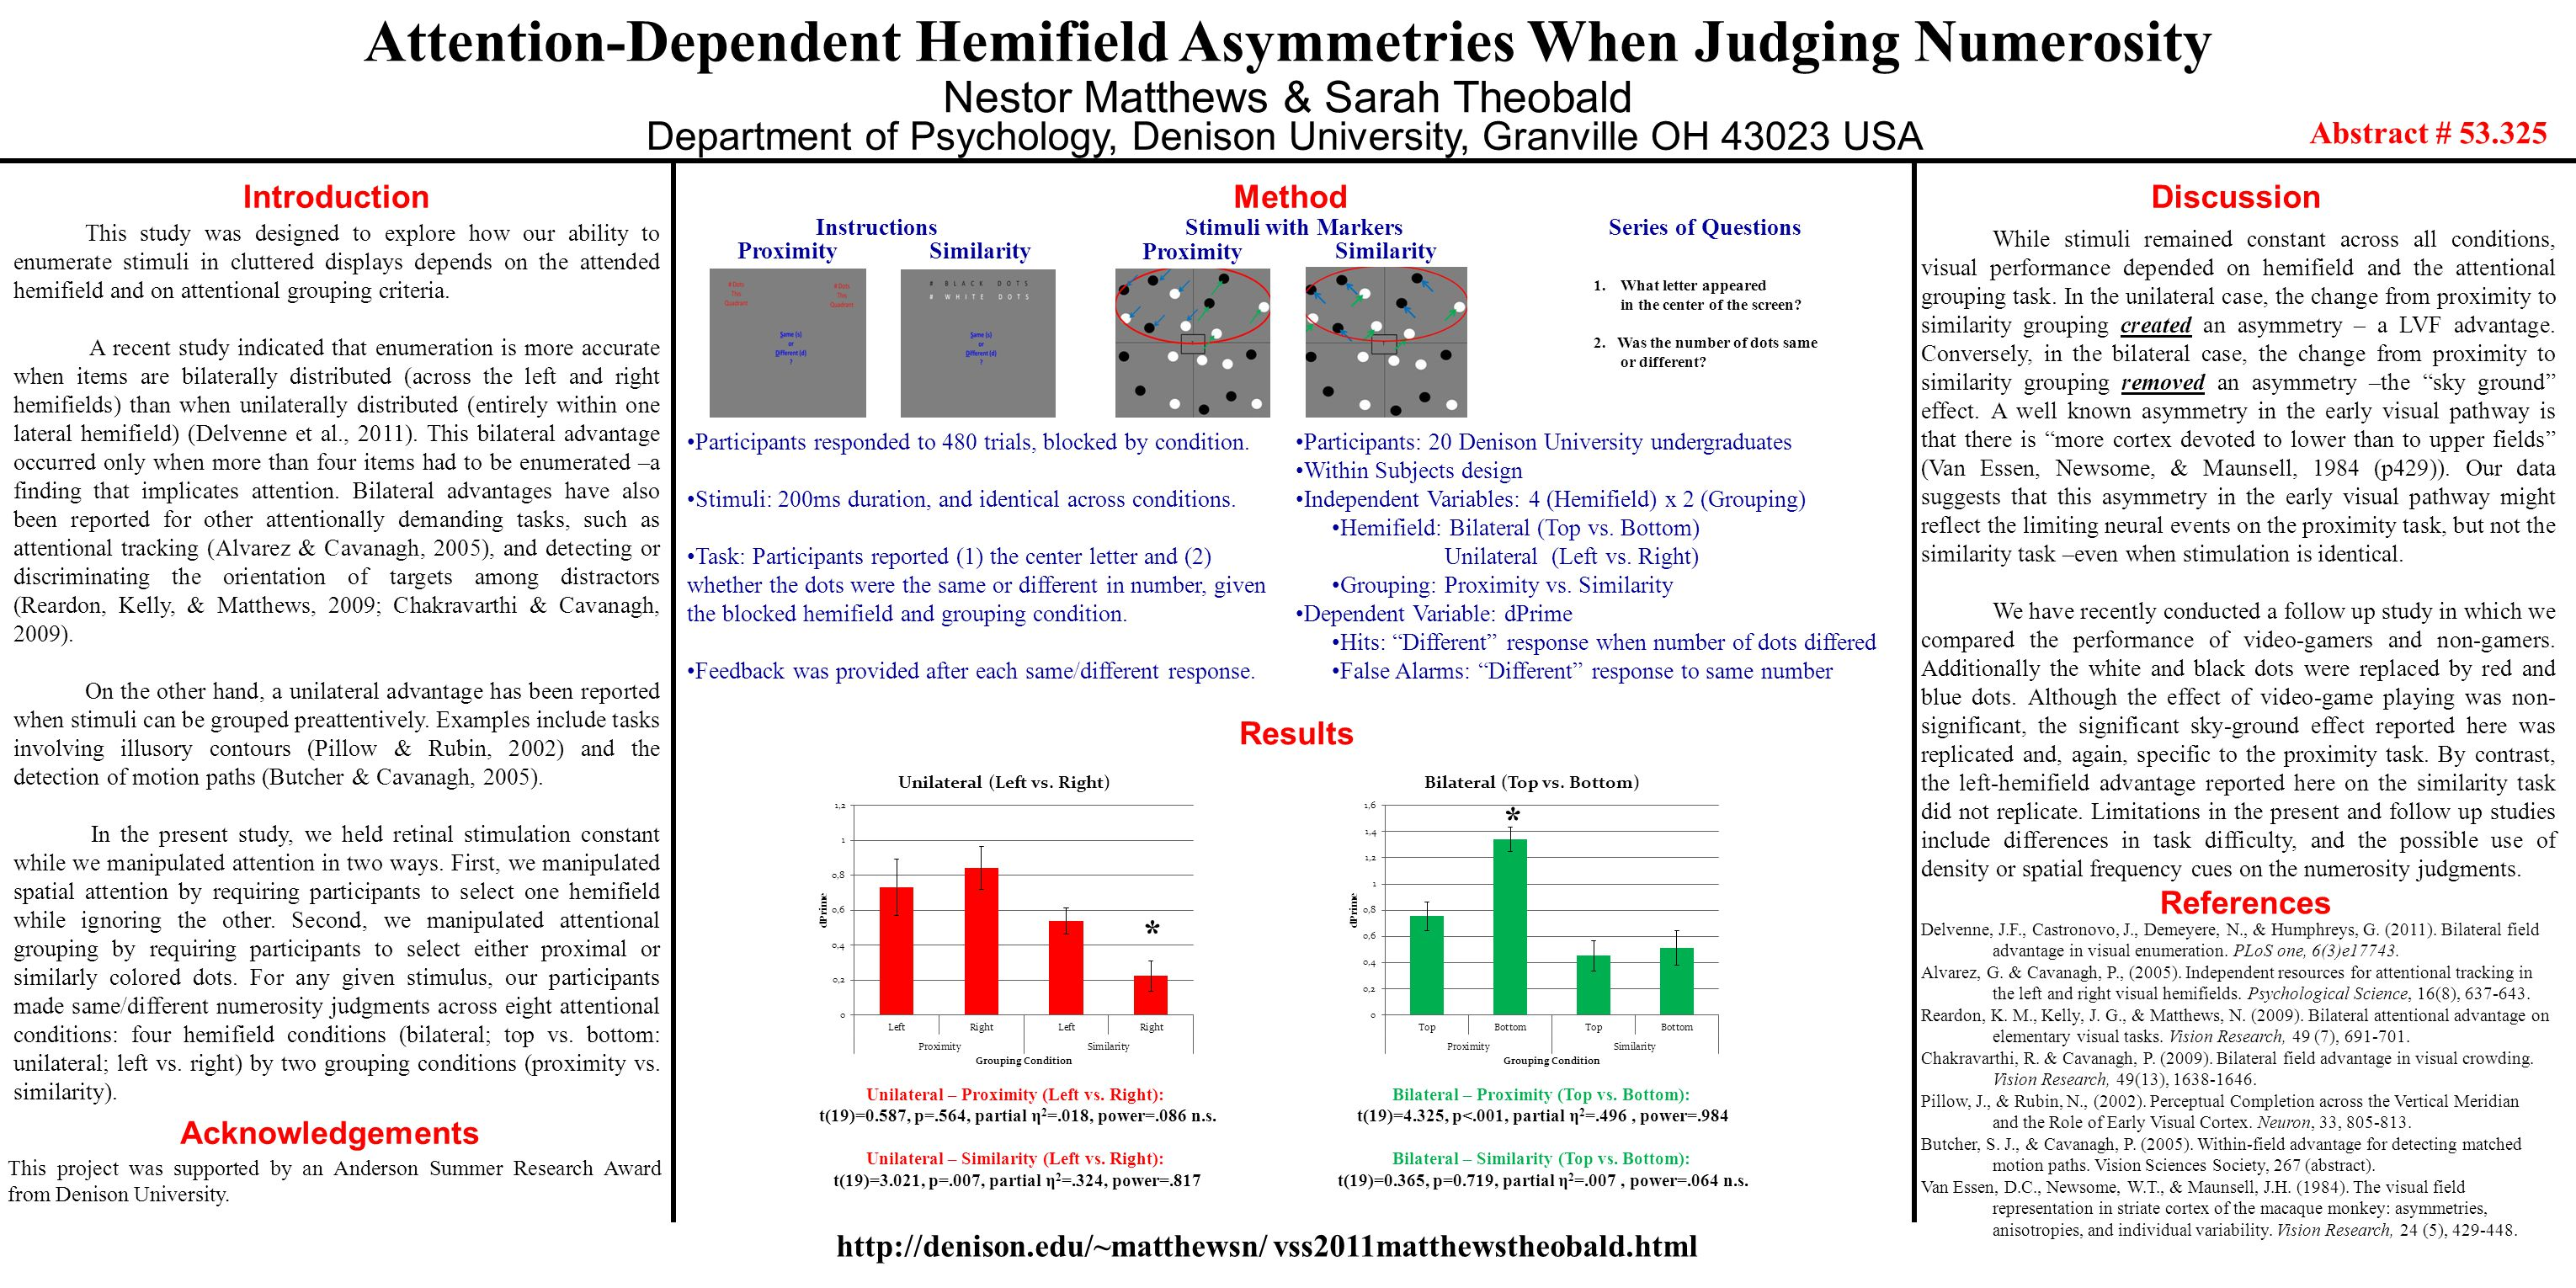 Attention-Dependent Hemifield Asymmetries When Judging Numerosity Nestor Matthews & Sarah Theobald Department of Psychology, Denison University, Granville OH 43023 USA This study was designed to explore how our ability to enumerate stimuli in cluttered displays depends on the attended hemifield and on attentional grouping criteria.